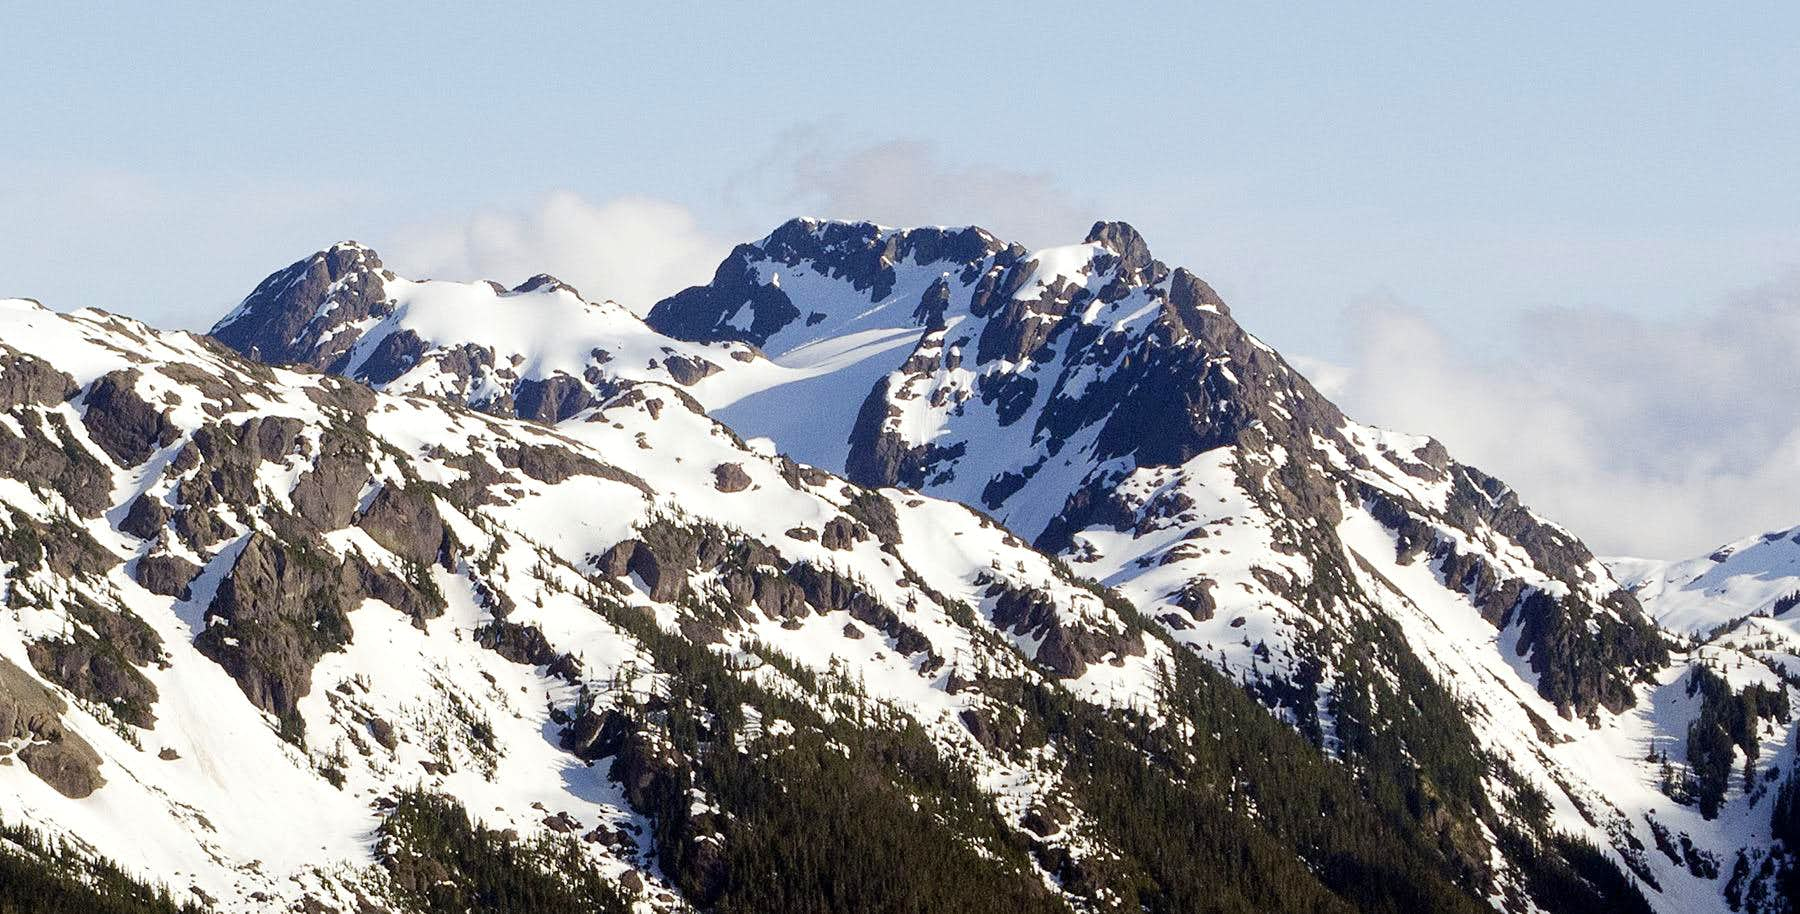 El Piveto Mountain